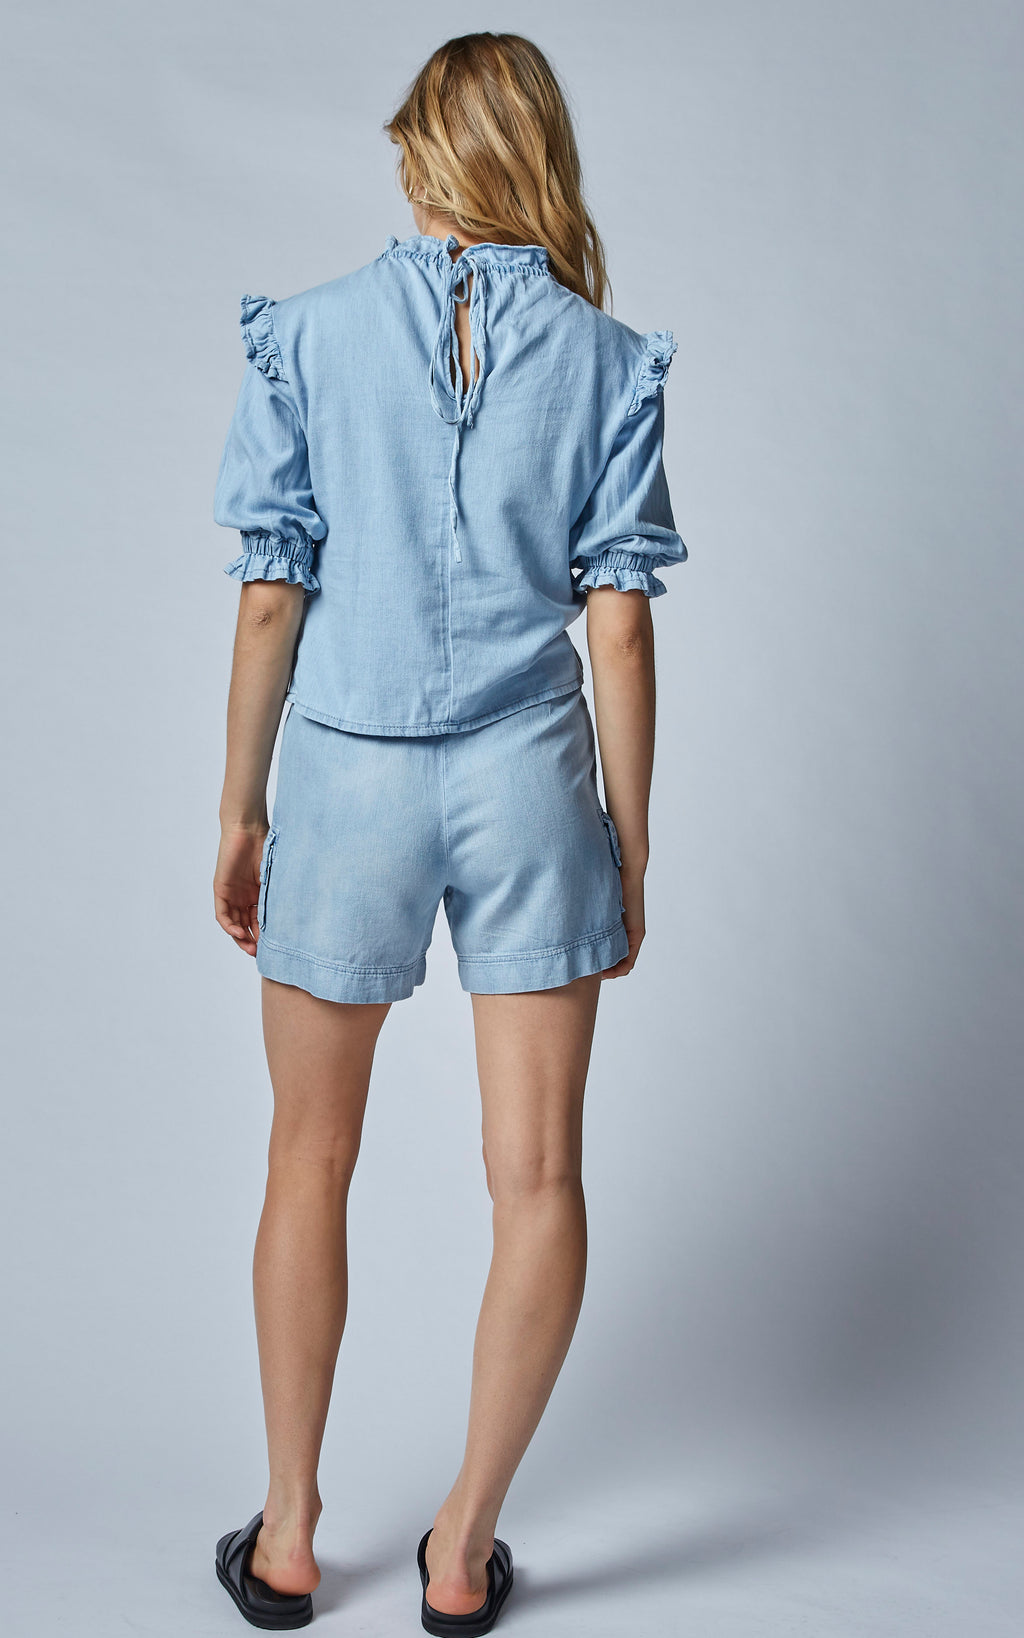 TOMCAT BLUE HIGH WAISTED LINEN DENIM SHORTS